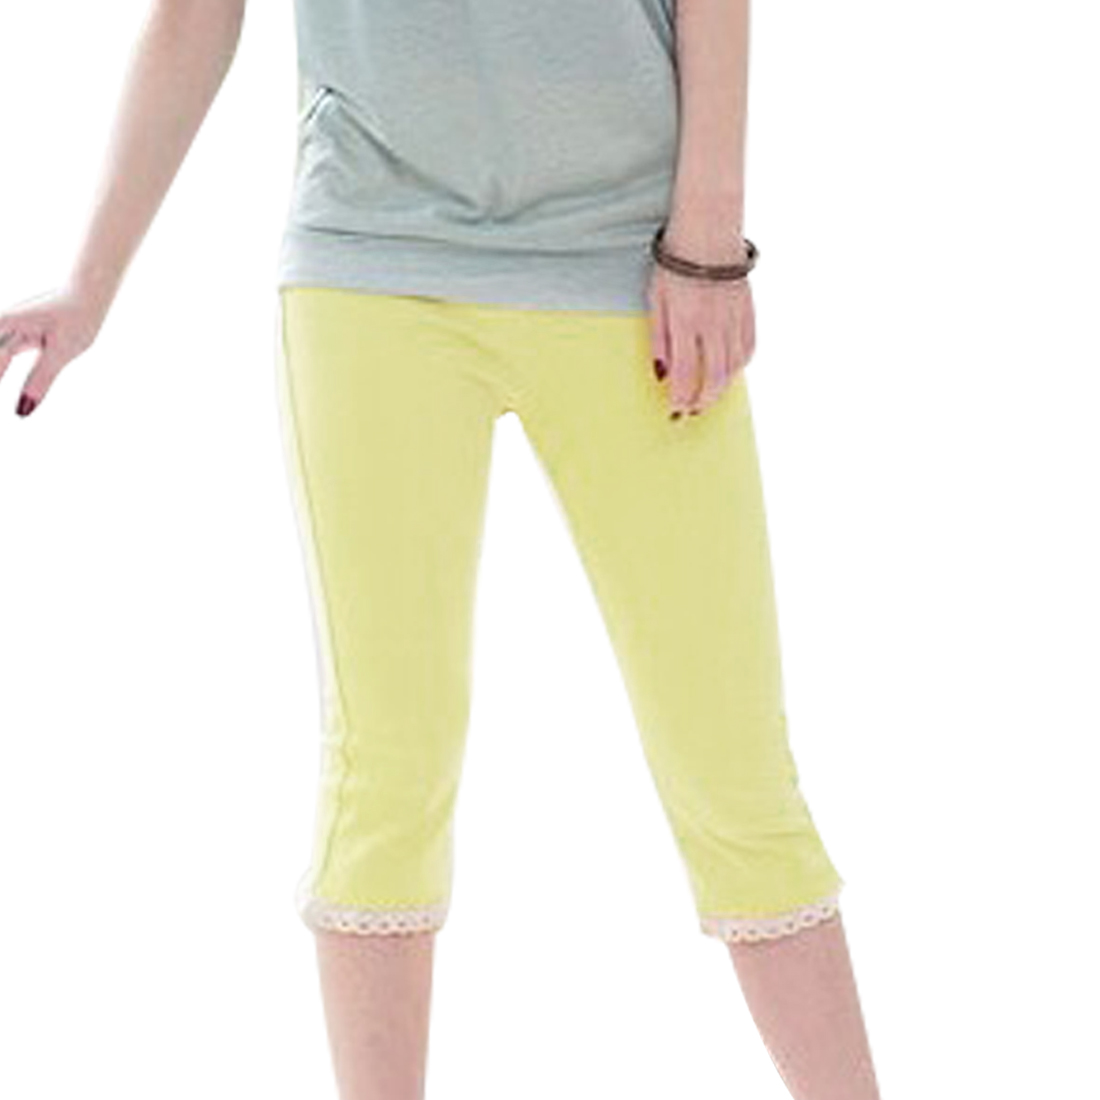 Stretchy Waist Tight Ribbings Leisure Cropped Leggings Yellow XS for Women